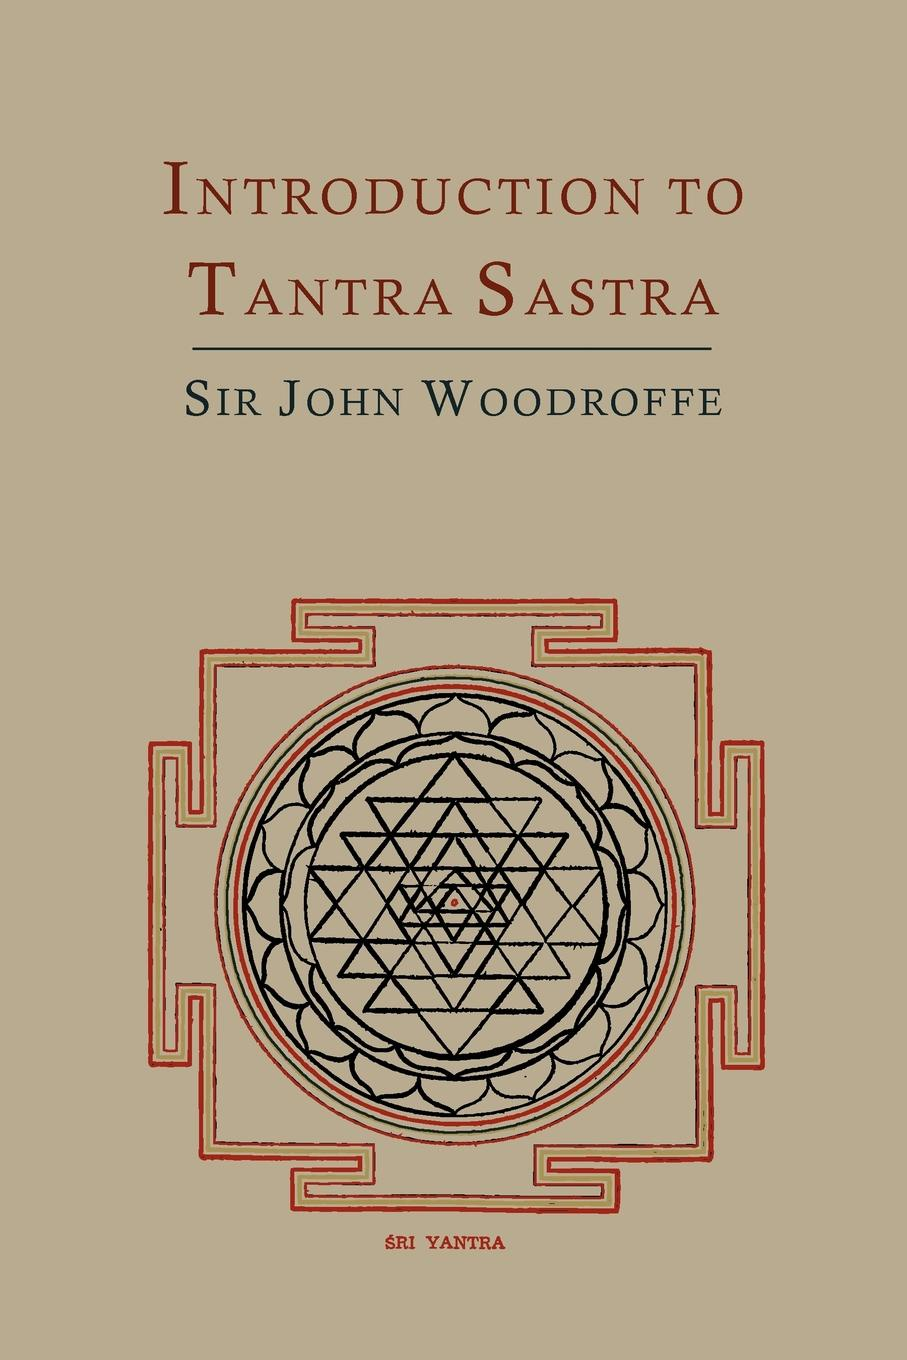 John George Woodroffe, Arthur Avalon Introduction to Tantra Sastra ratna tantra nanomaterial characterization an introduction